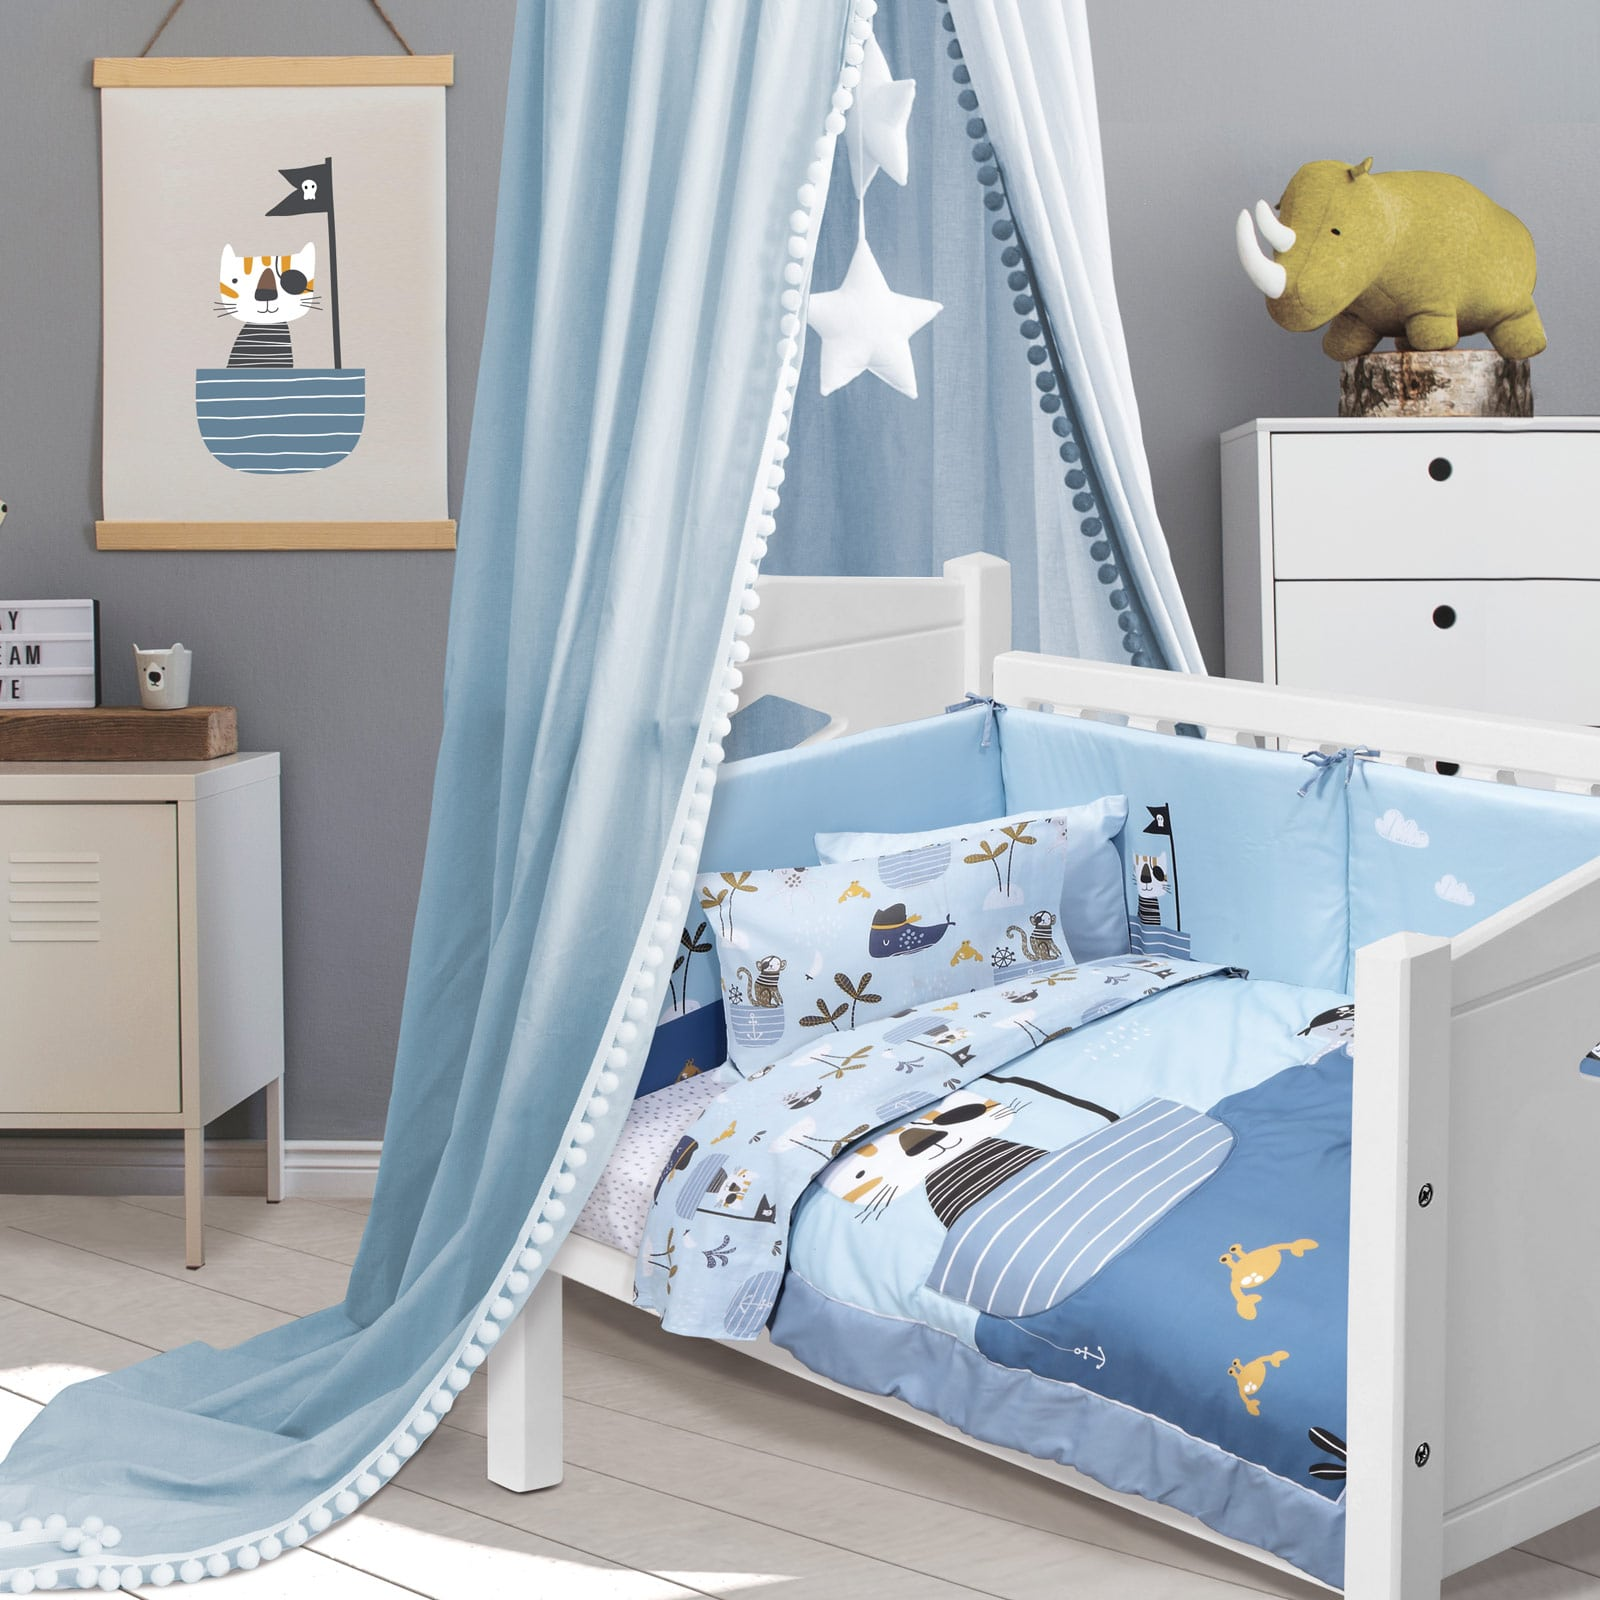 Πάντα Κούνιας 4748 Fun Baby Digital Light Blue-Ocher Das Home 45x195cm